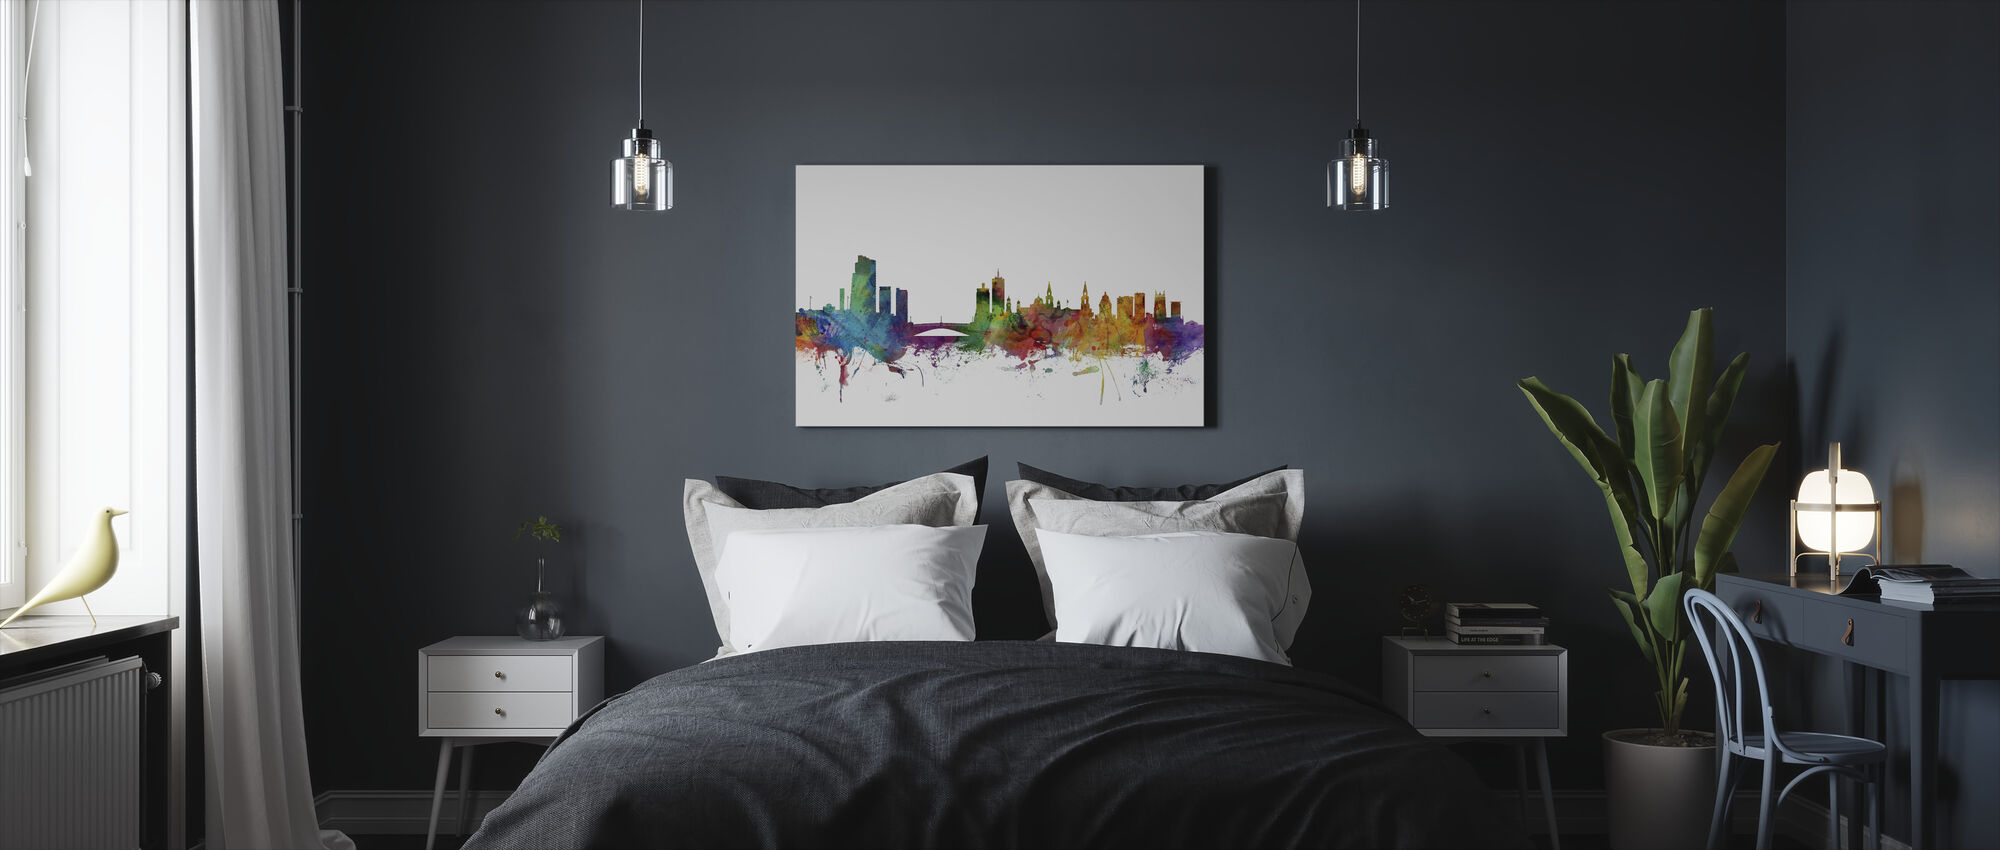 Leeds England Skyline - Canvas print - Bedroom